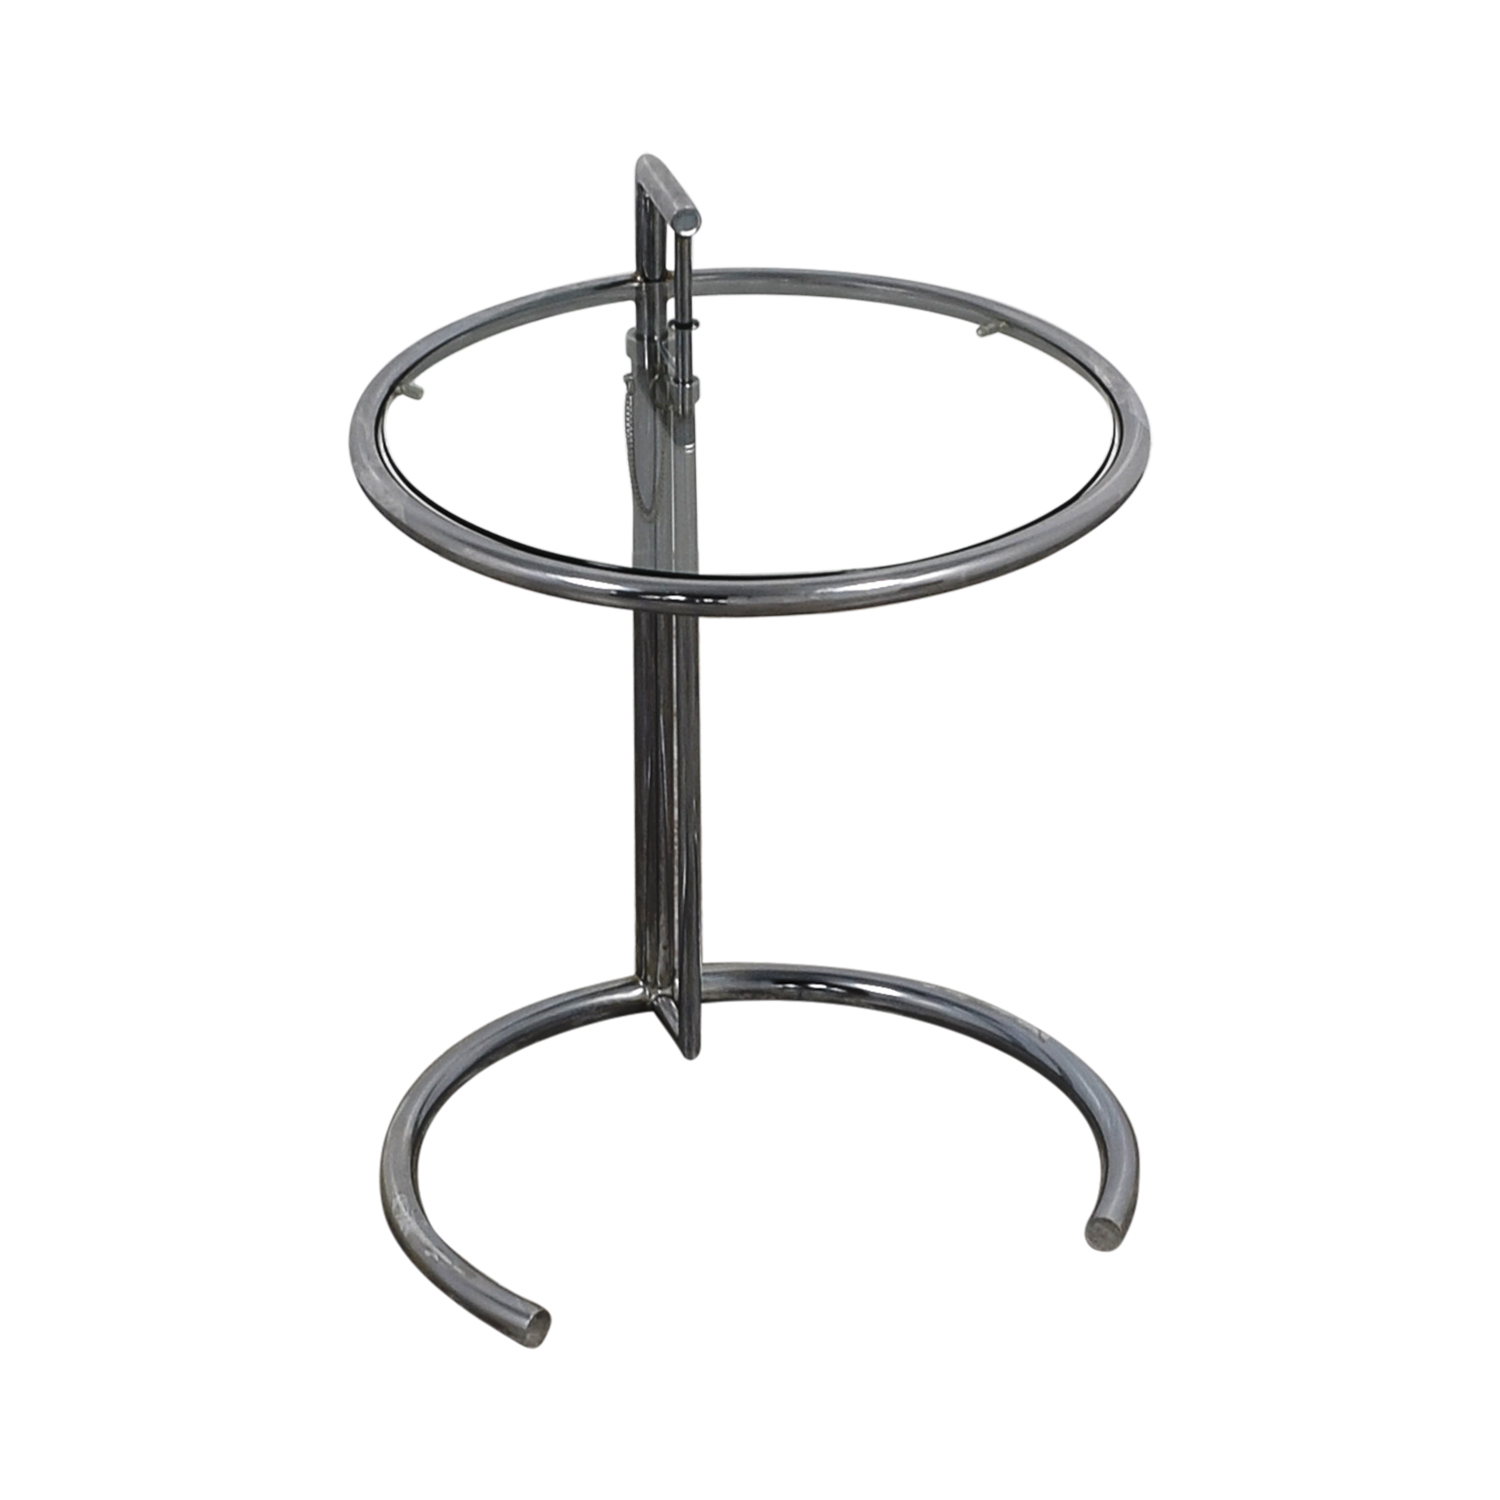 Eileen Gray Eileen Gray Round Glass and Metal Side Table Tables